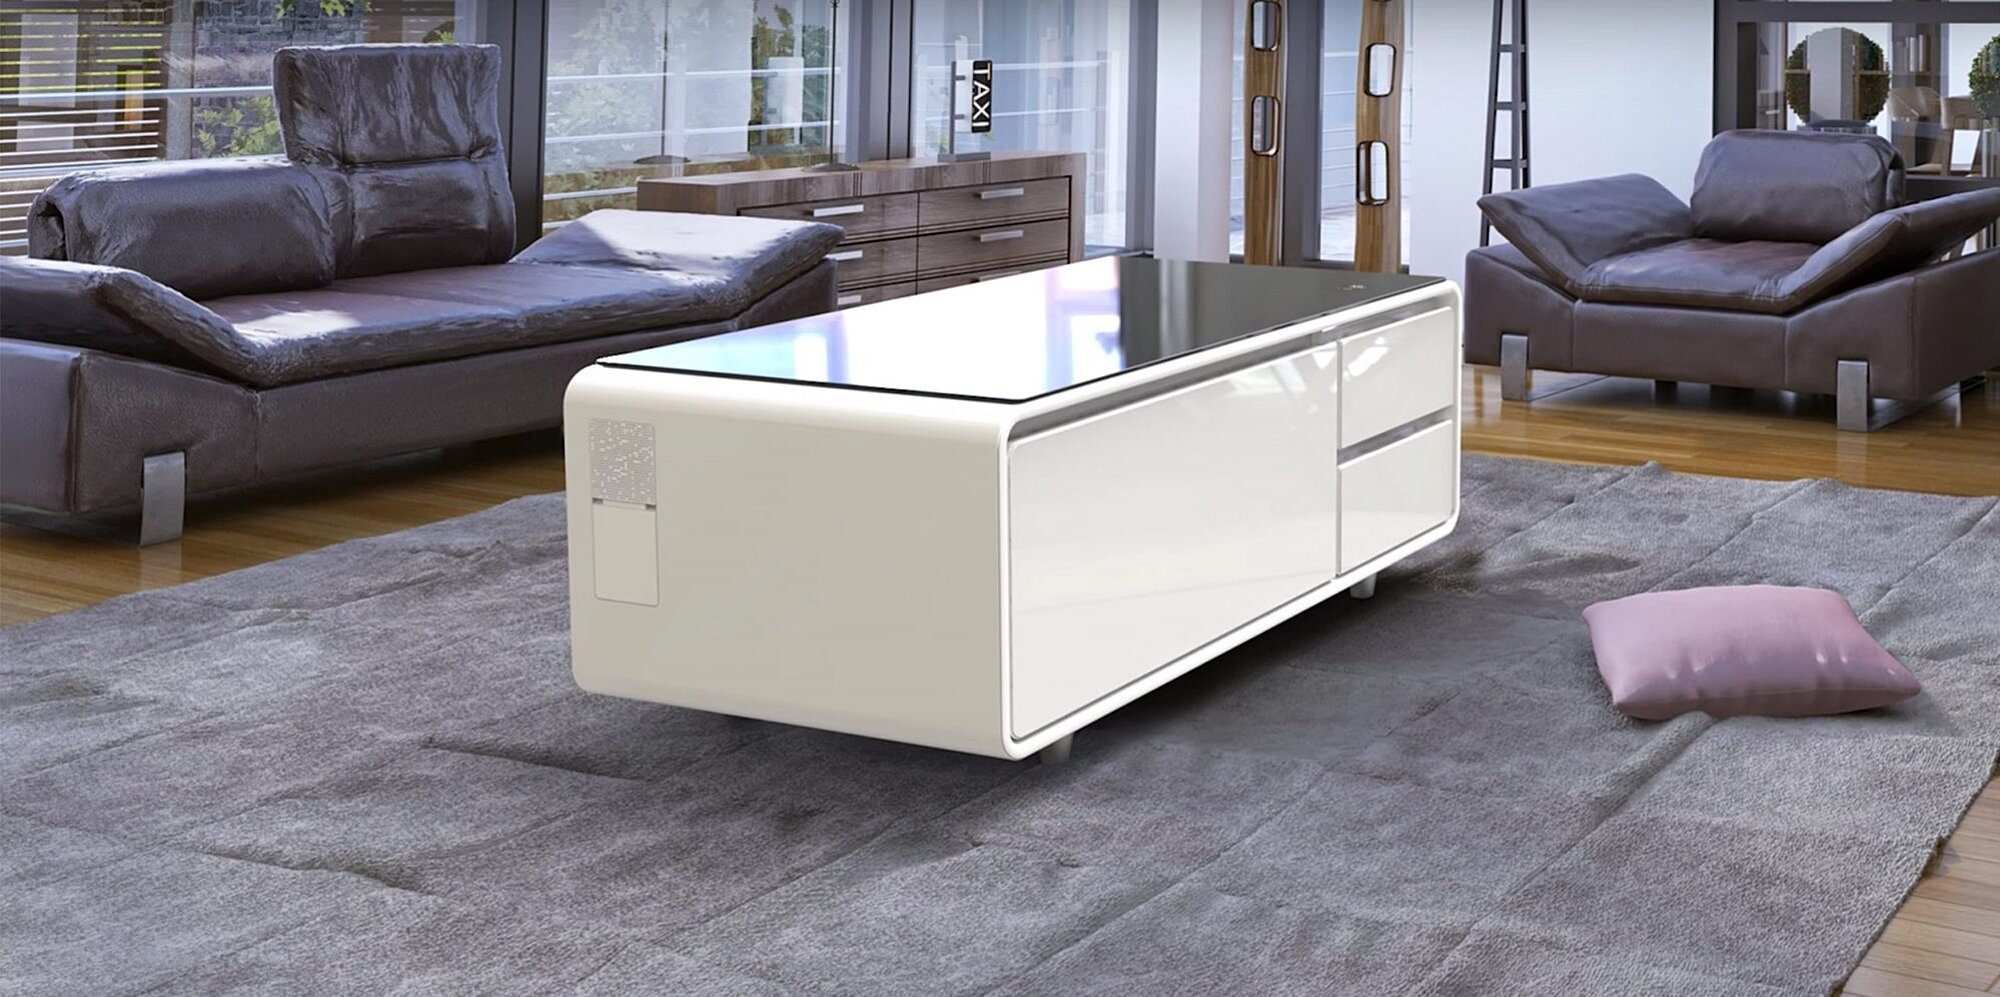 Is This Crowd Funded Coffee Table Fridge Hybrid Actually A Scam Myrecipes